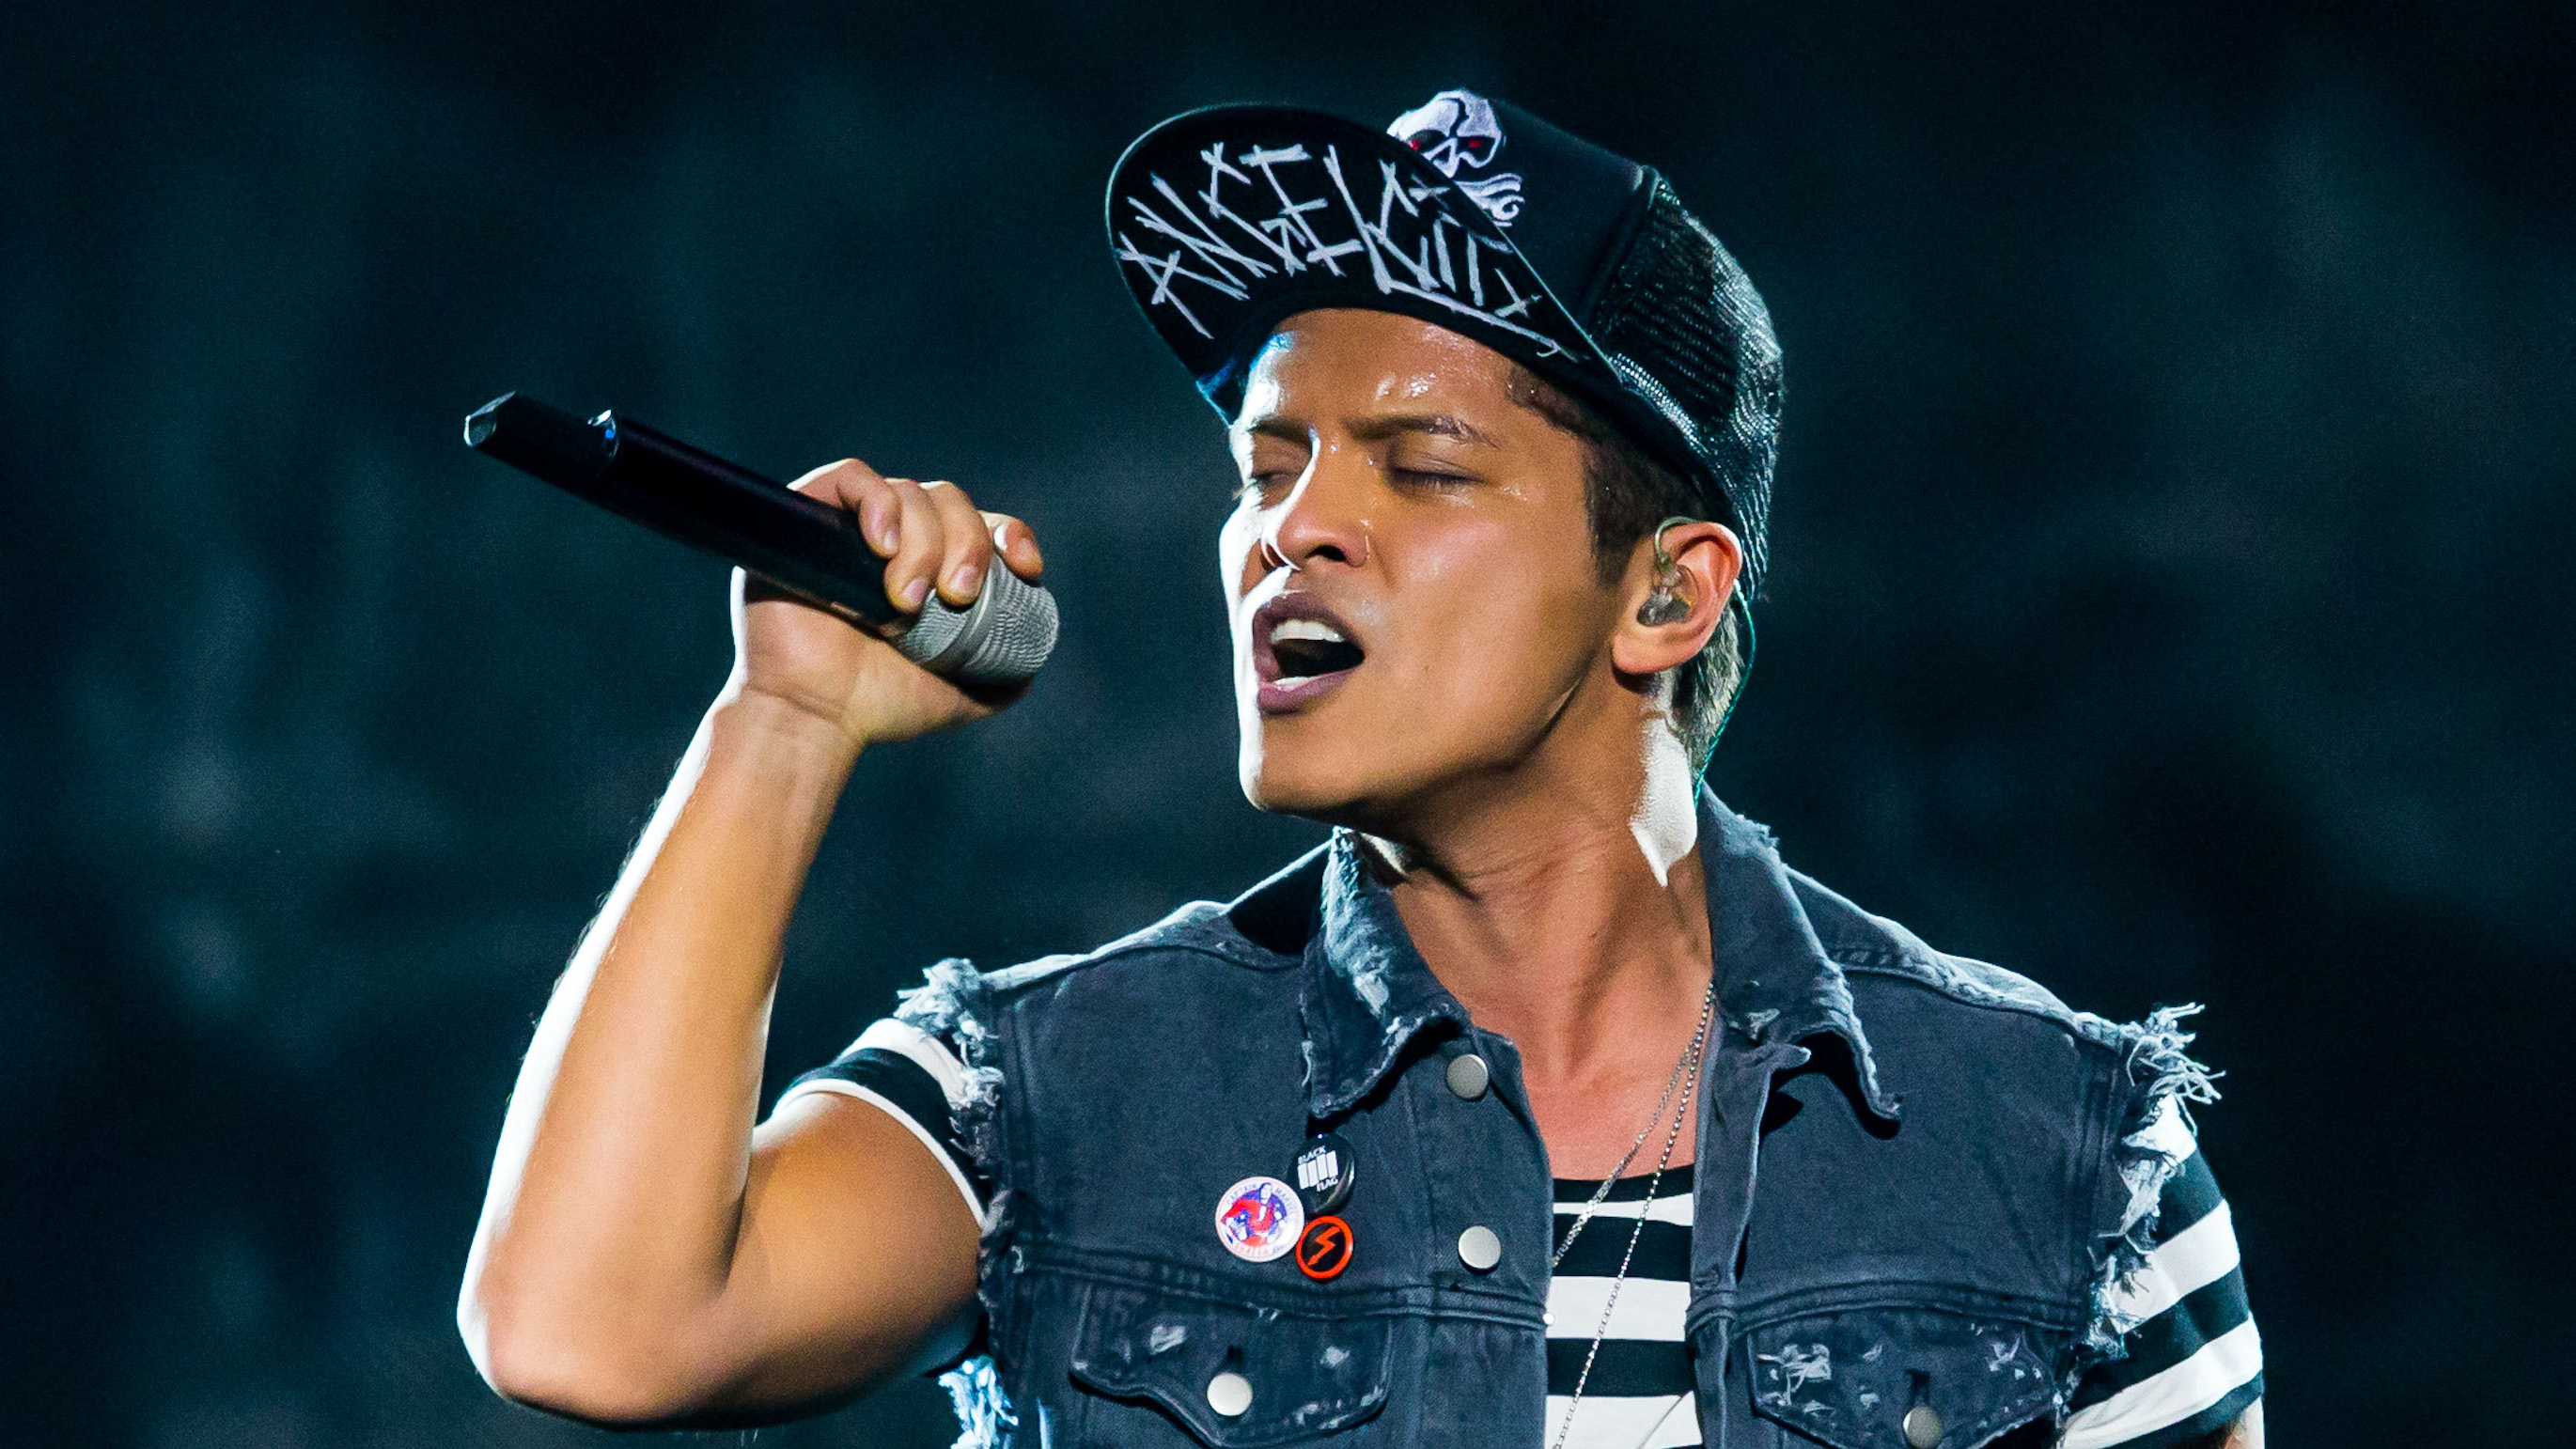 http://www.anrdoezrs.net/links/6193637/type/dlg/http://www.ticketnetwork.com/tix/bruno-mars-08-16-2017-tickets-2976483.aspx